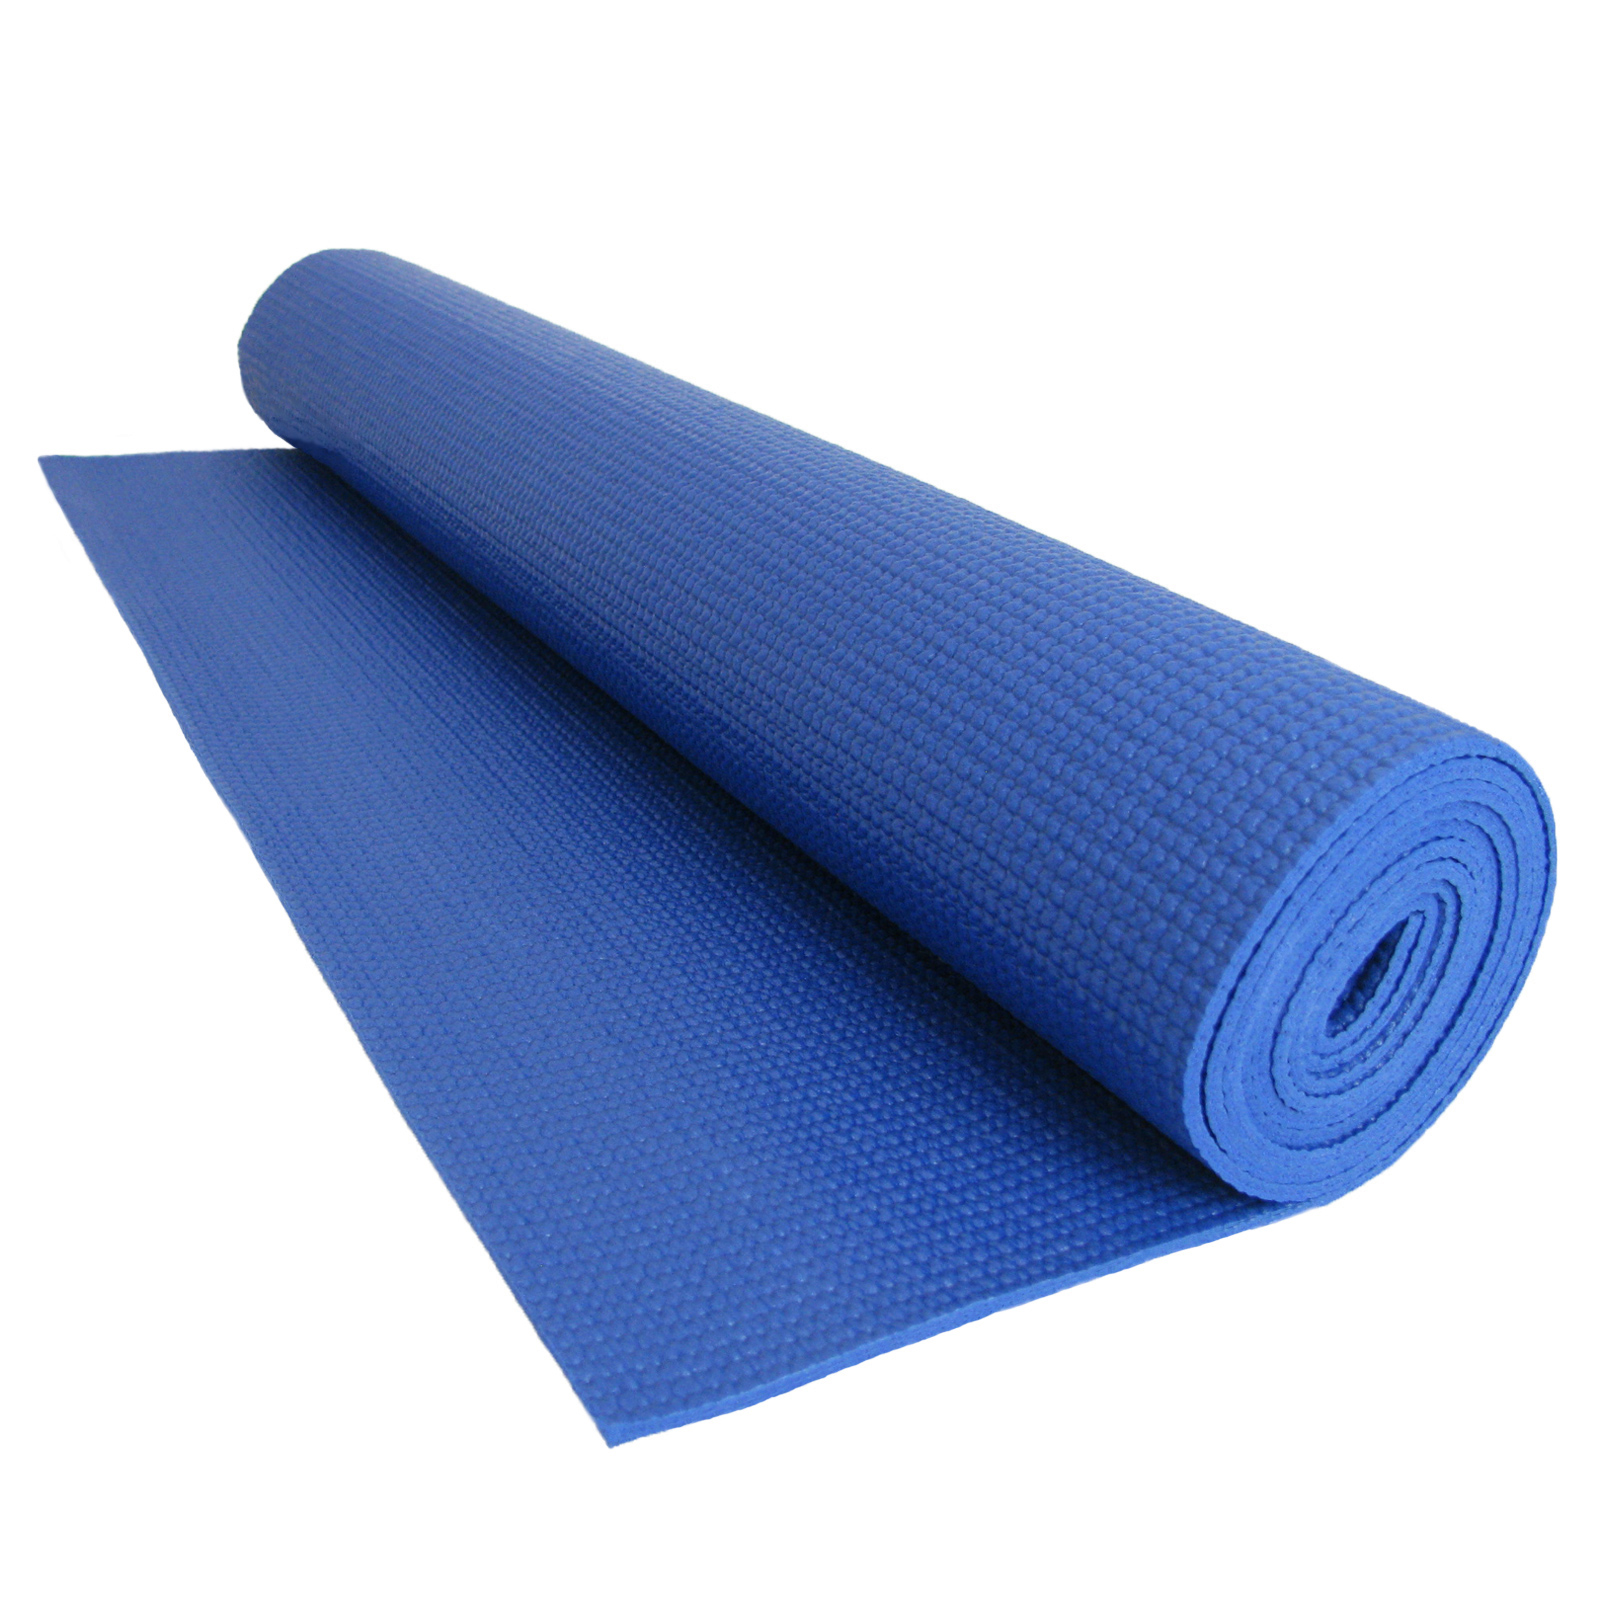 Yoga Exercise Mat Fitness Physio Pilates Gym Non Slip